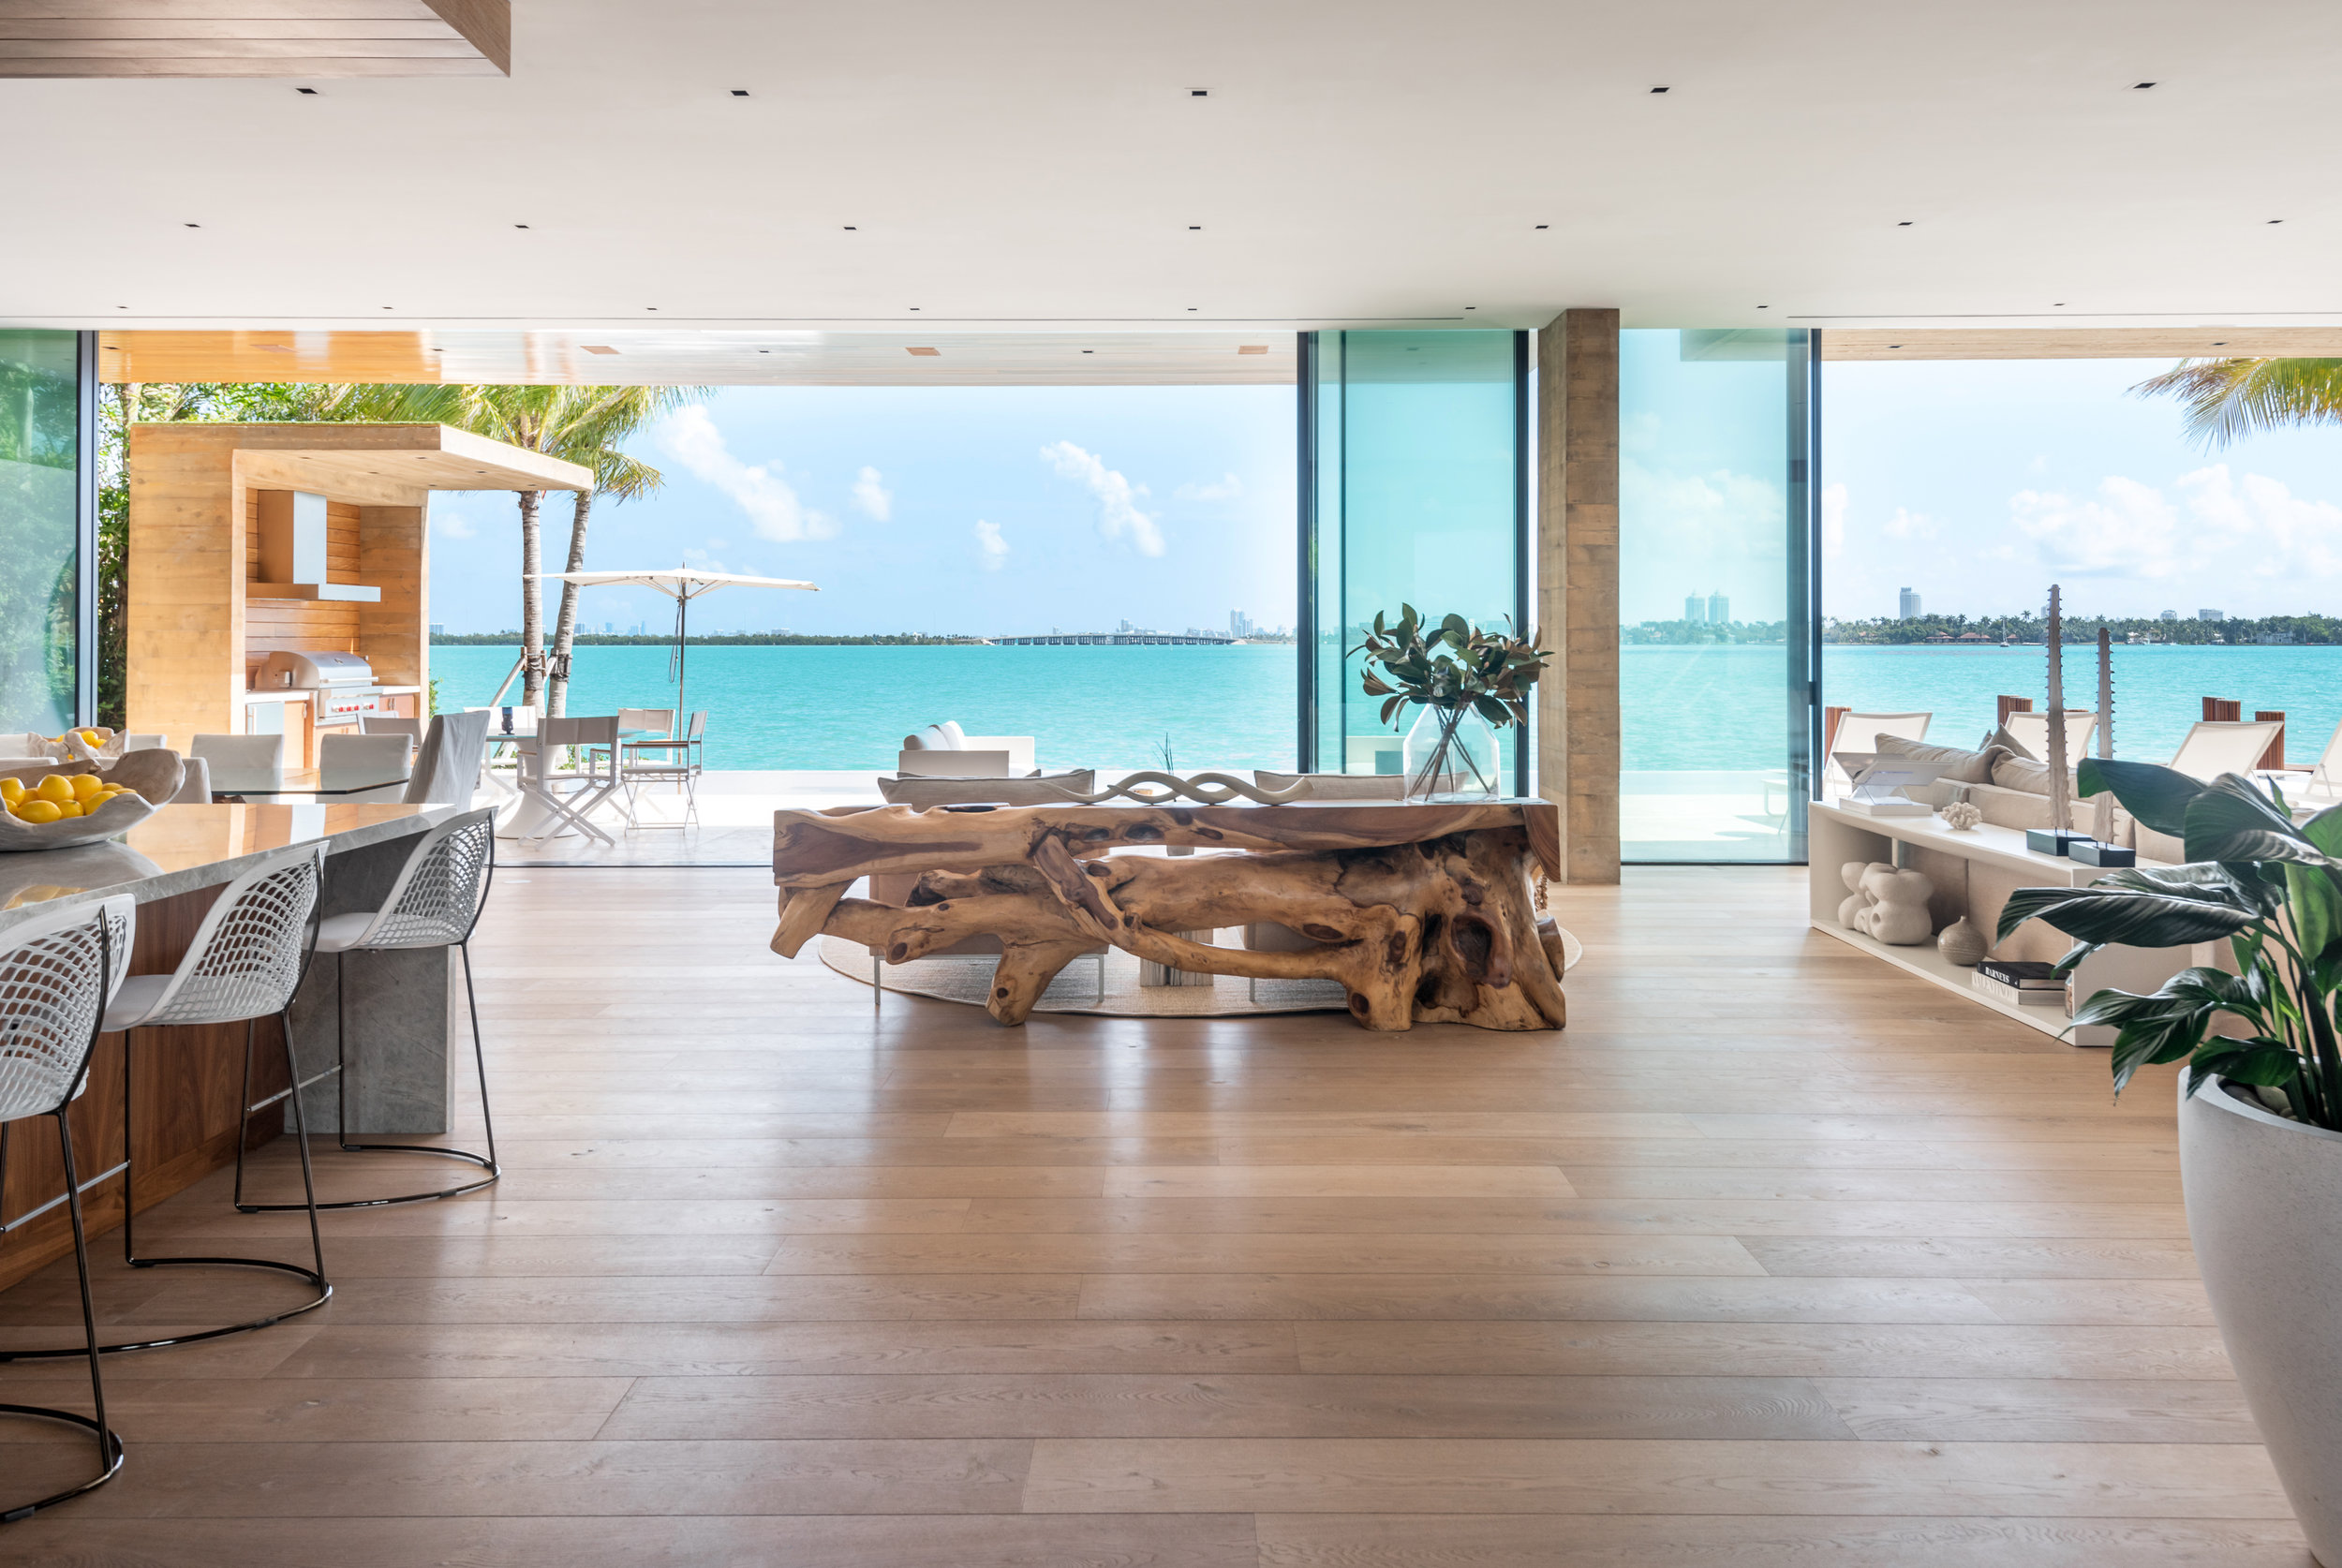 Check Out This Choeff Levy Fischman-Designed Tropical Waterfront Mansion Featuring Post-Tension Structural Design